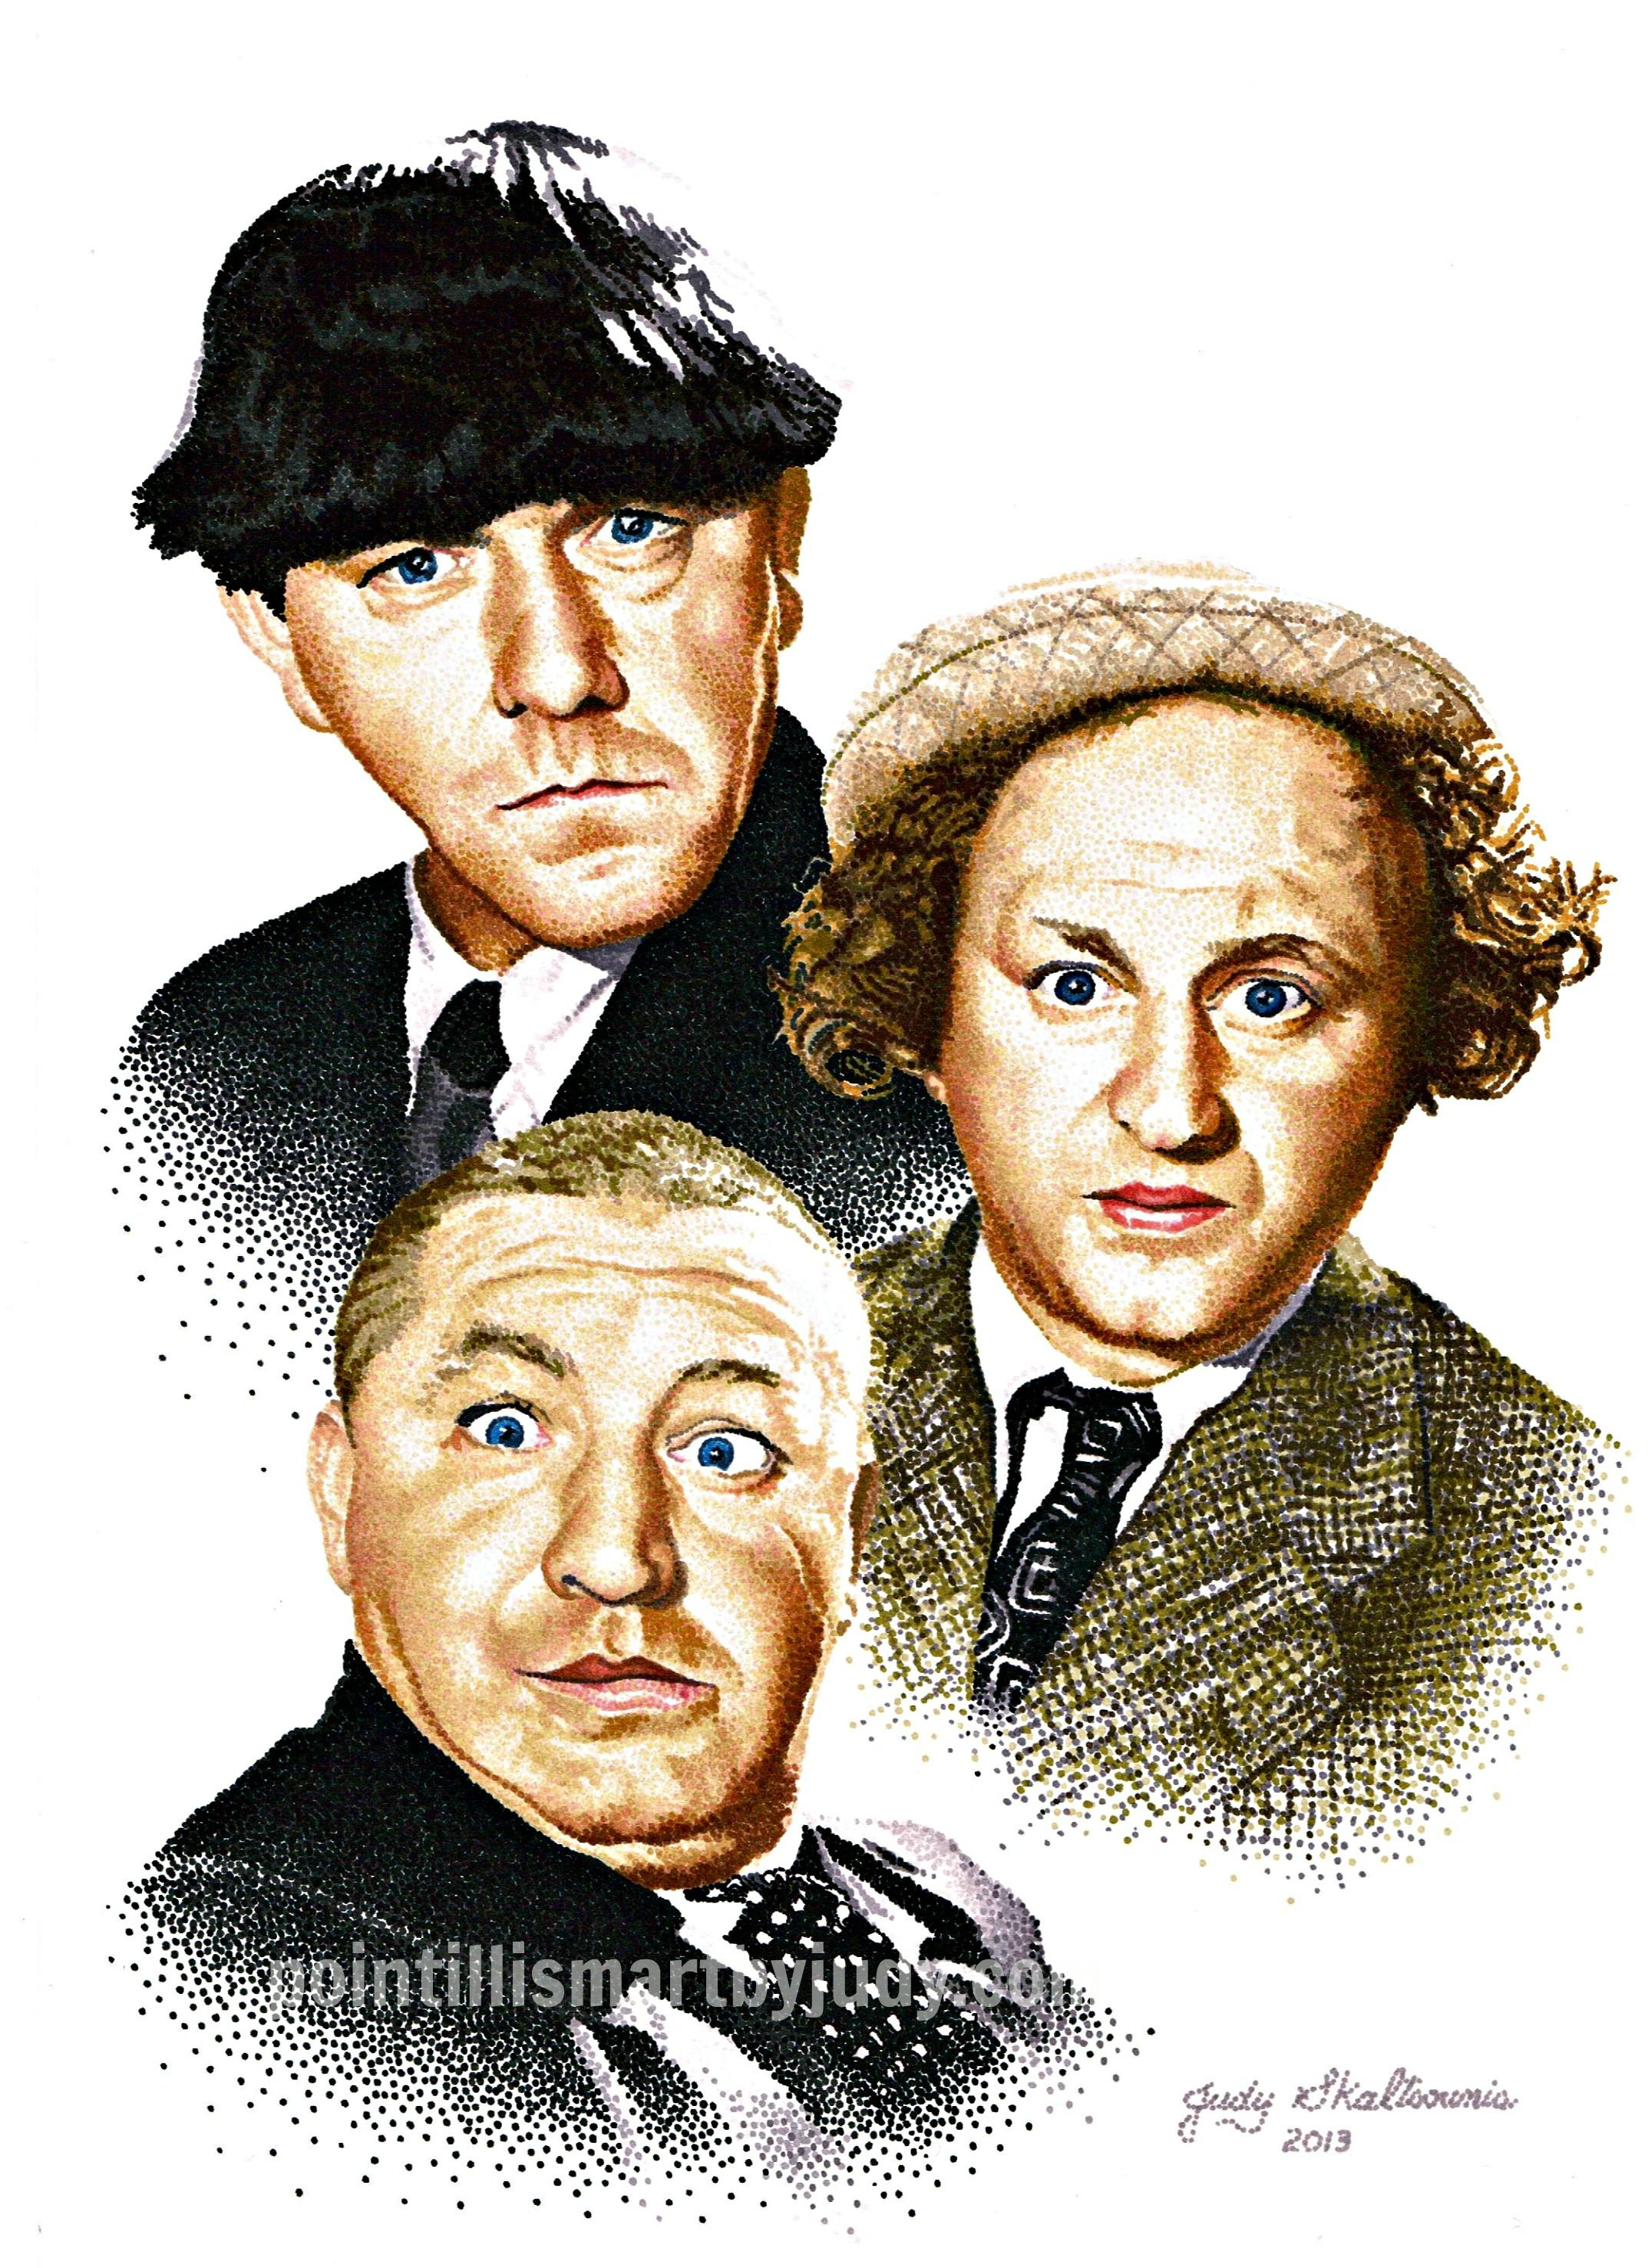 The Three Stooges In Pointillism Http Etsy Me 11gcnsr Pointillism Art Threestooges The Three Stooges Classic Comedies Funny Caricatures